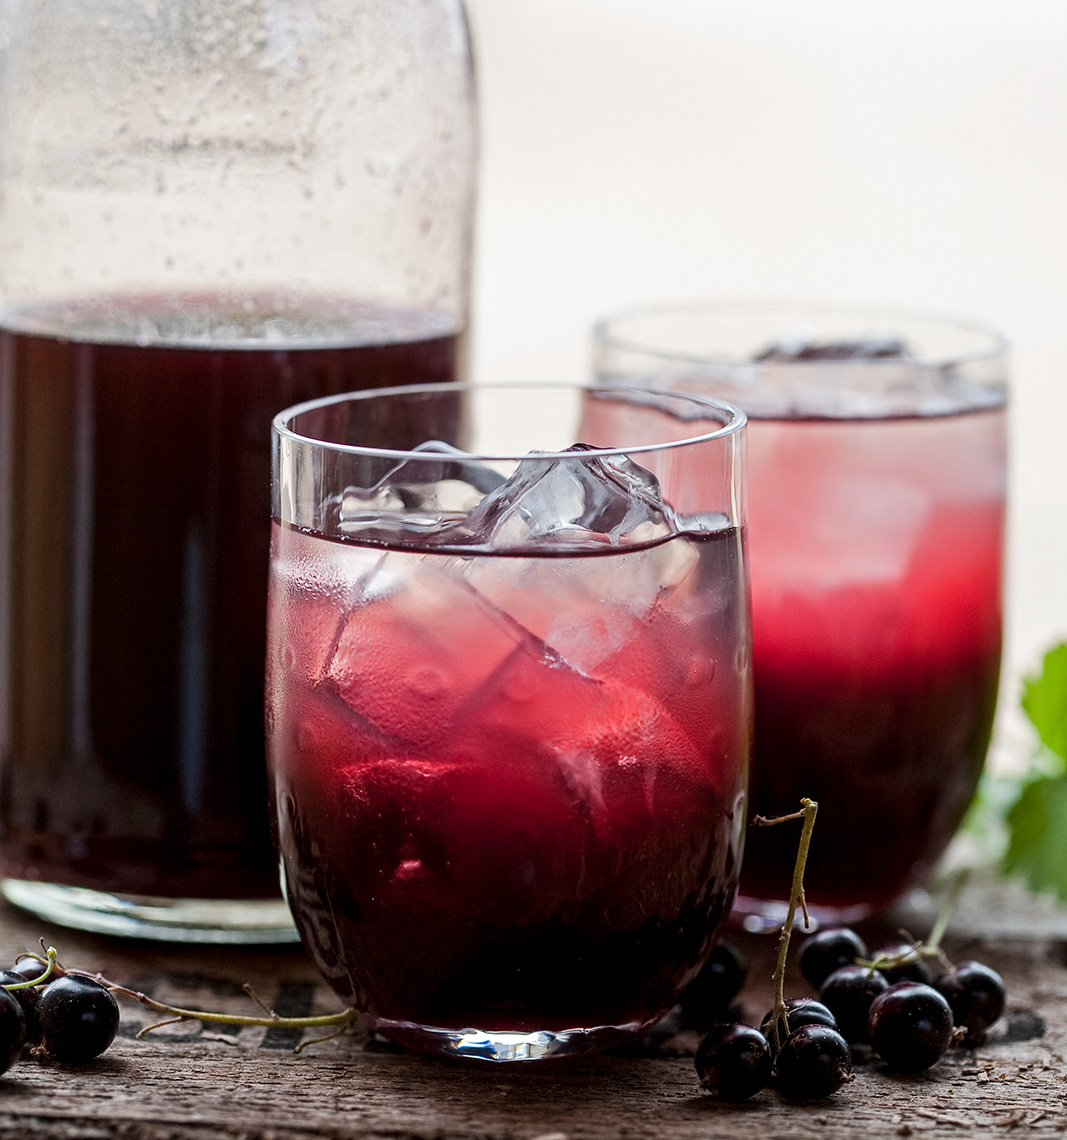 Home made Blackcurrant cordial | Colin Campbell - Food Photographer